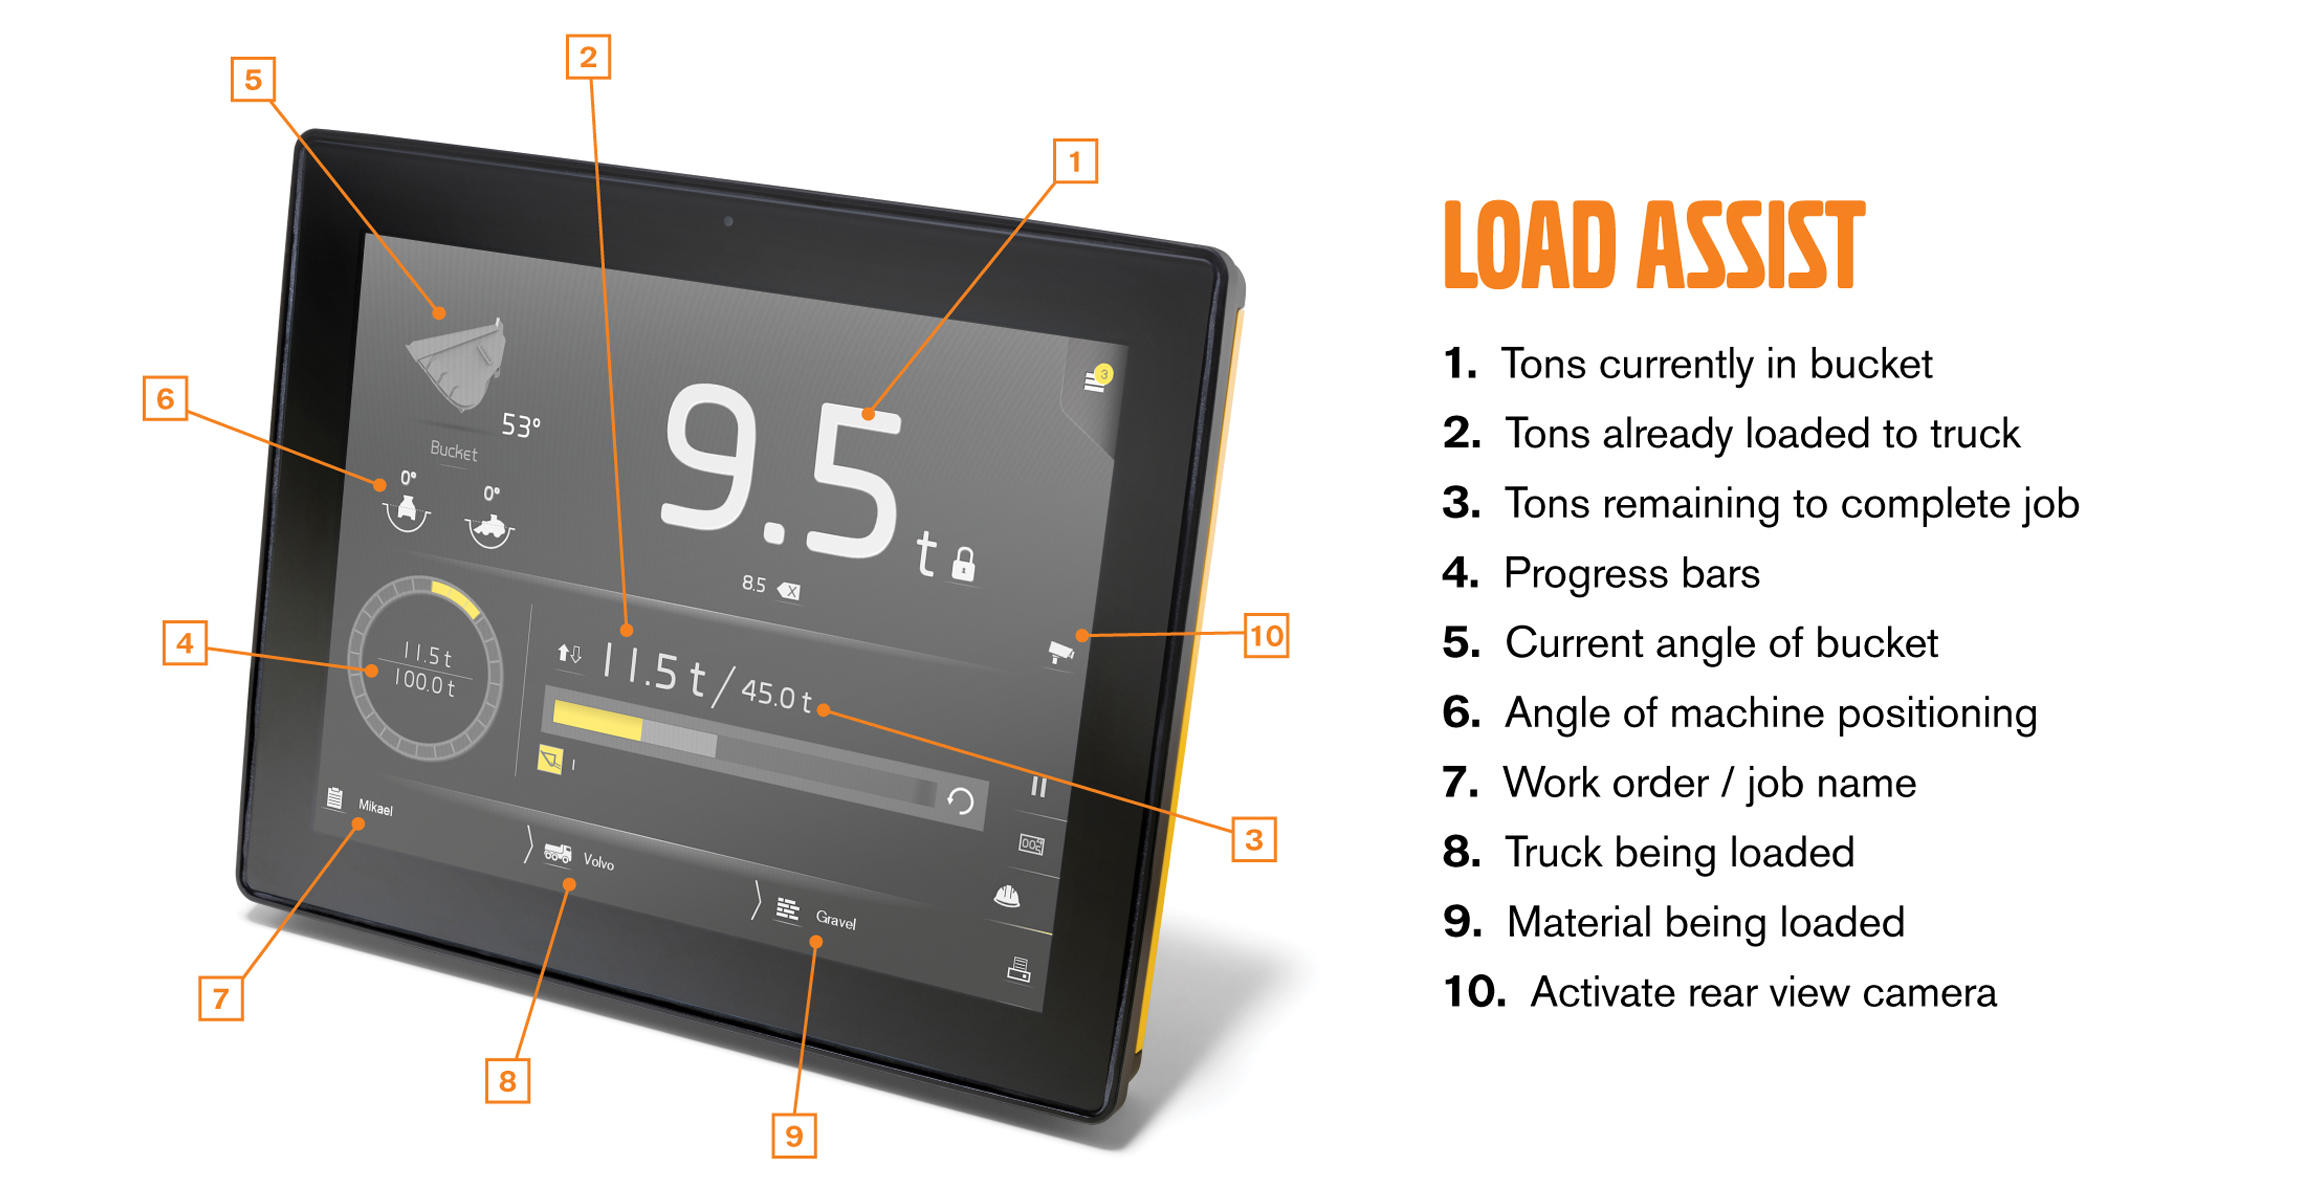 load-assist-infrographic